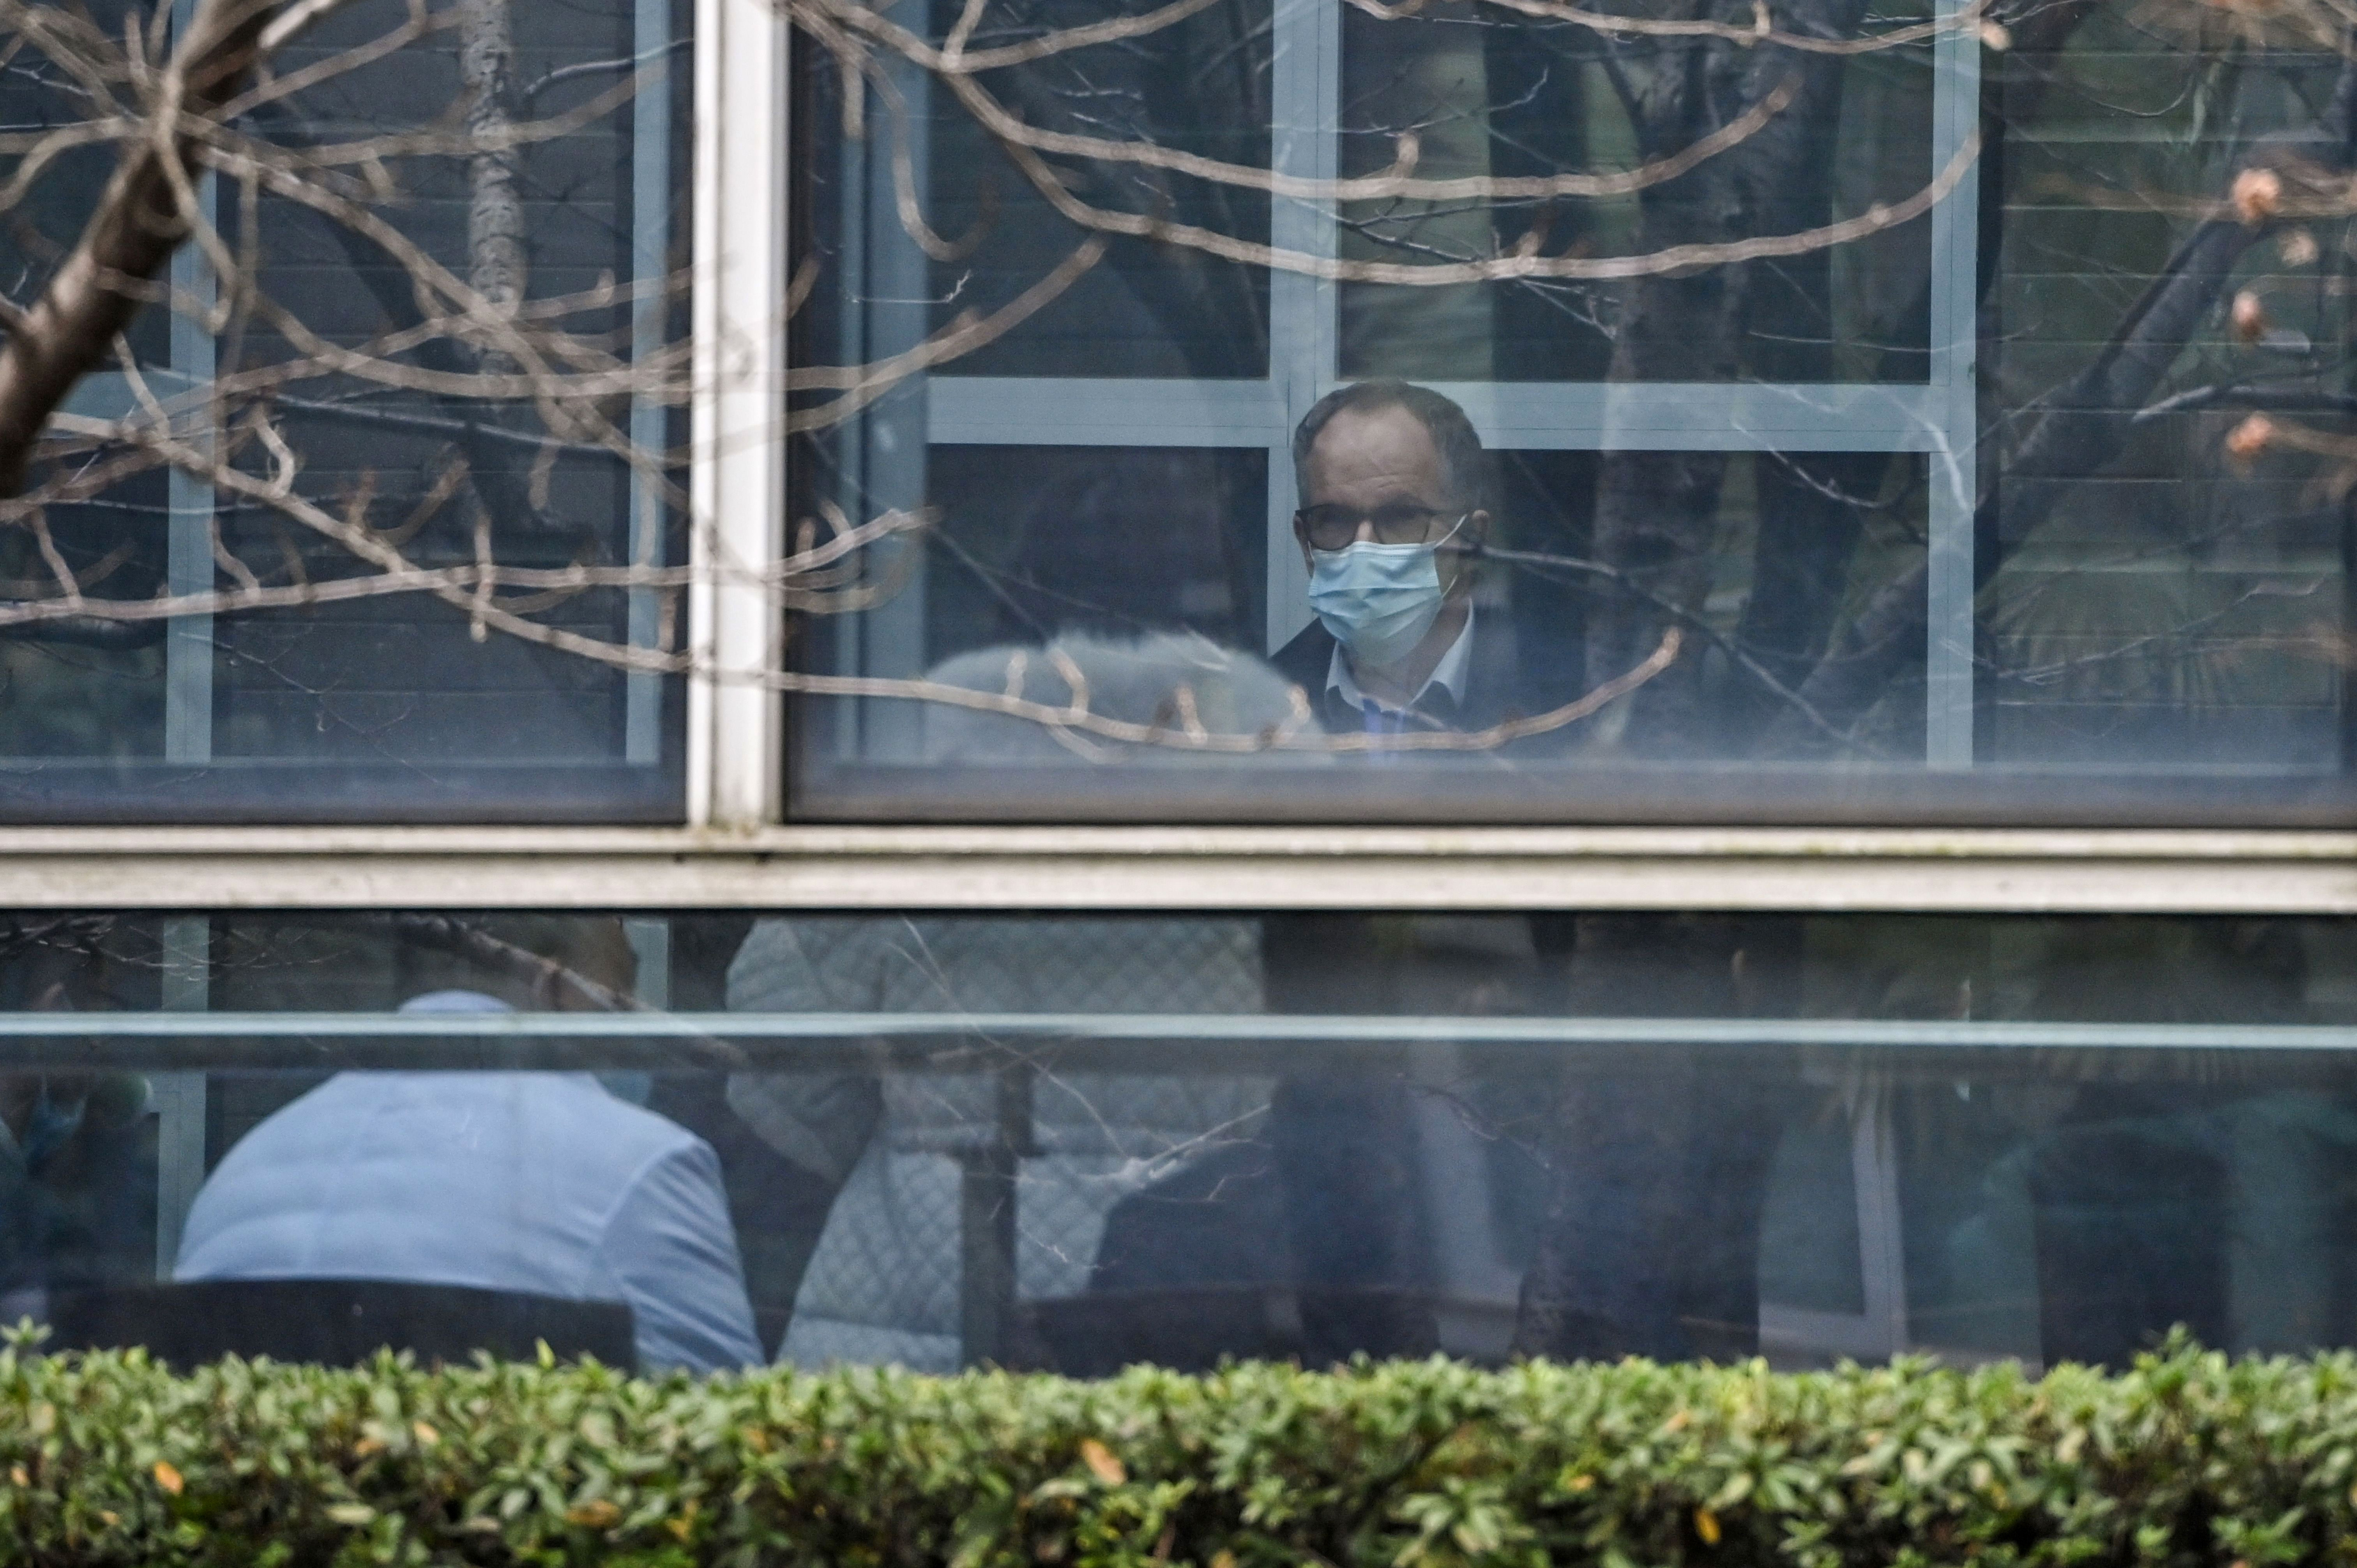 Peter Ben Embarek, the lead investigator for the World Health Organization team looking into the origins of the Covid-19 outbreak, is seen at the Hubei Animal Disease Control and Prevention Center in Wuhan, China, on February 2.